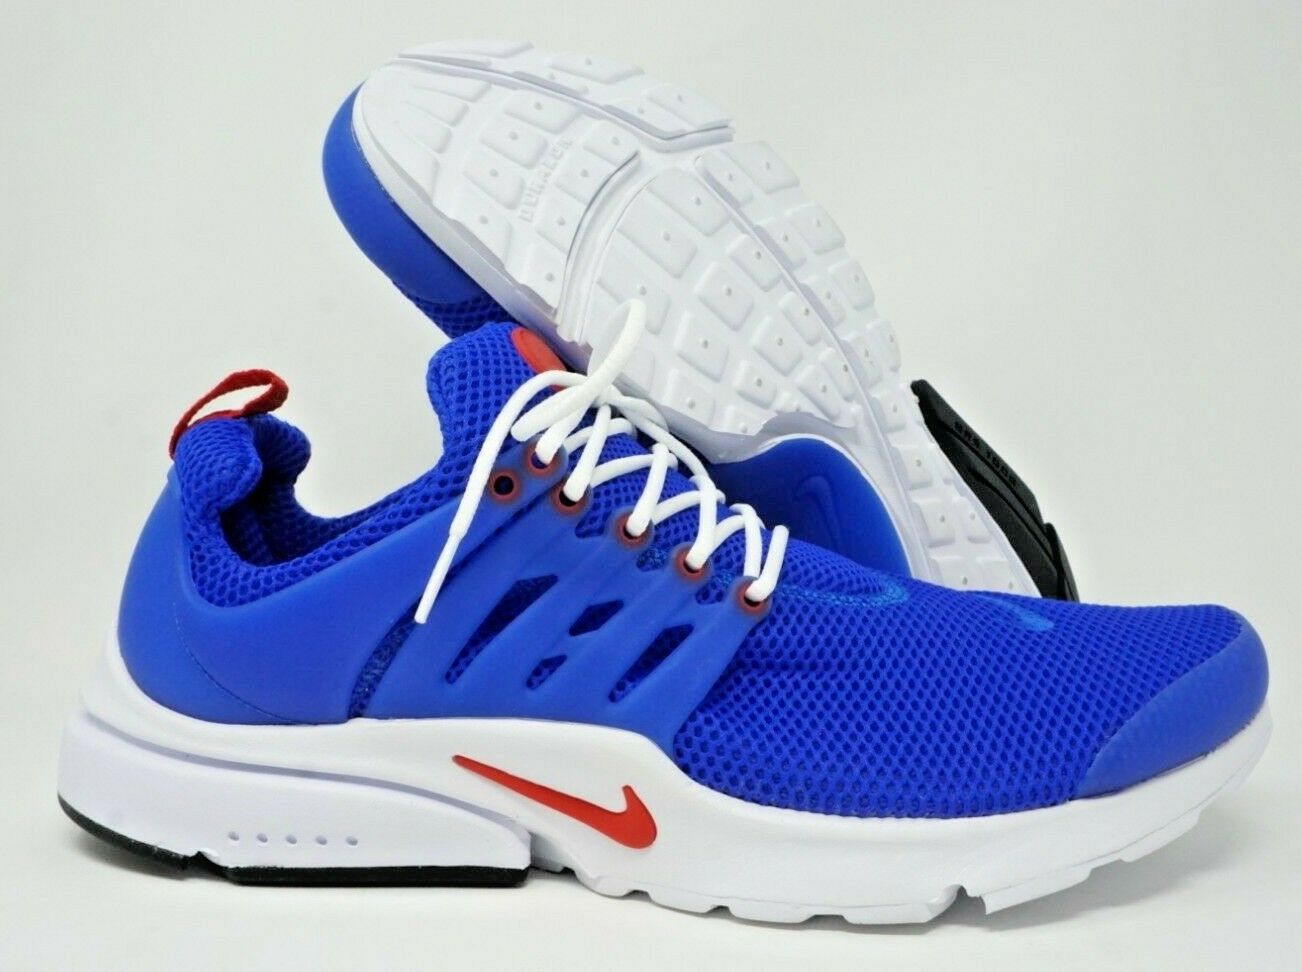 Nike Air Presto Essentials Mens Running shoes White blueee Red Size 13